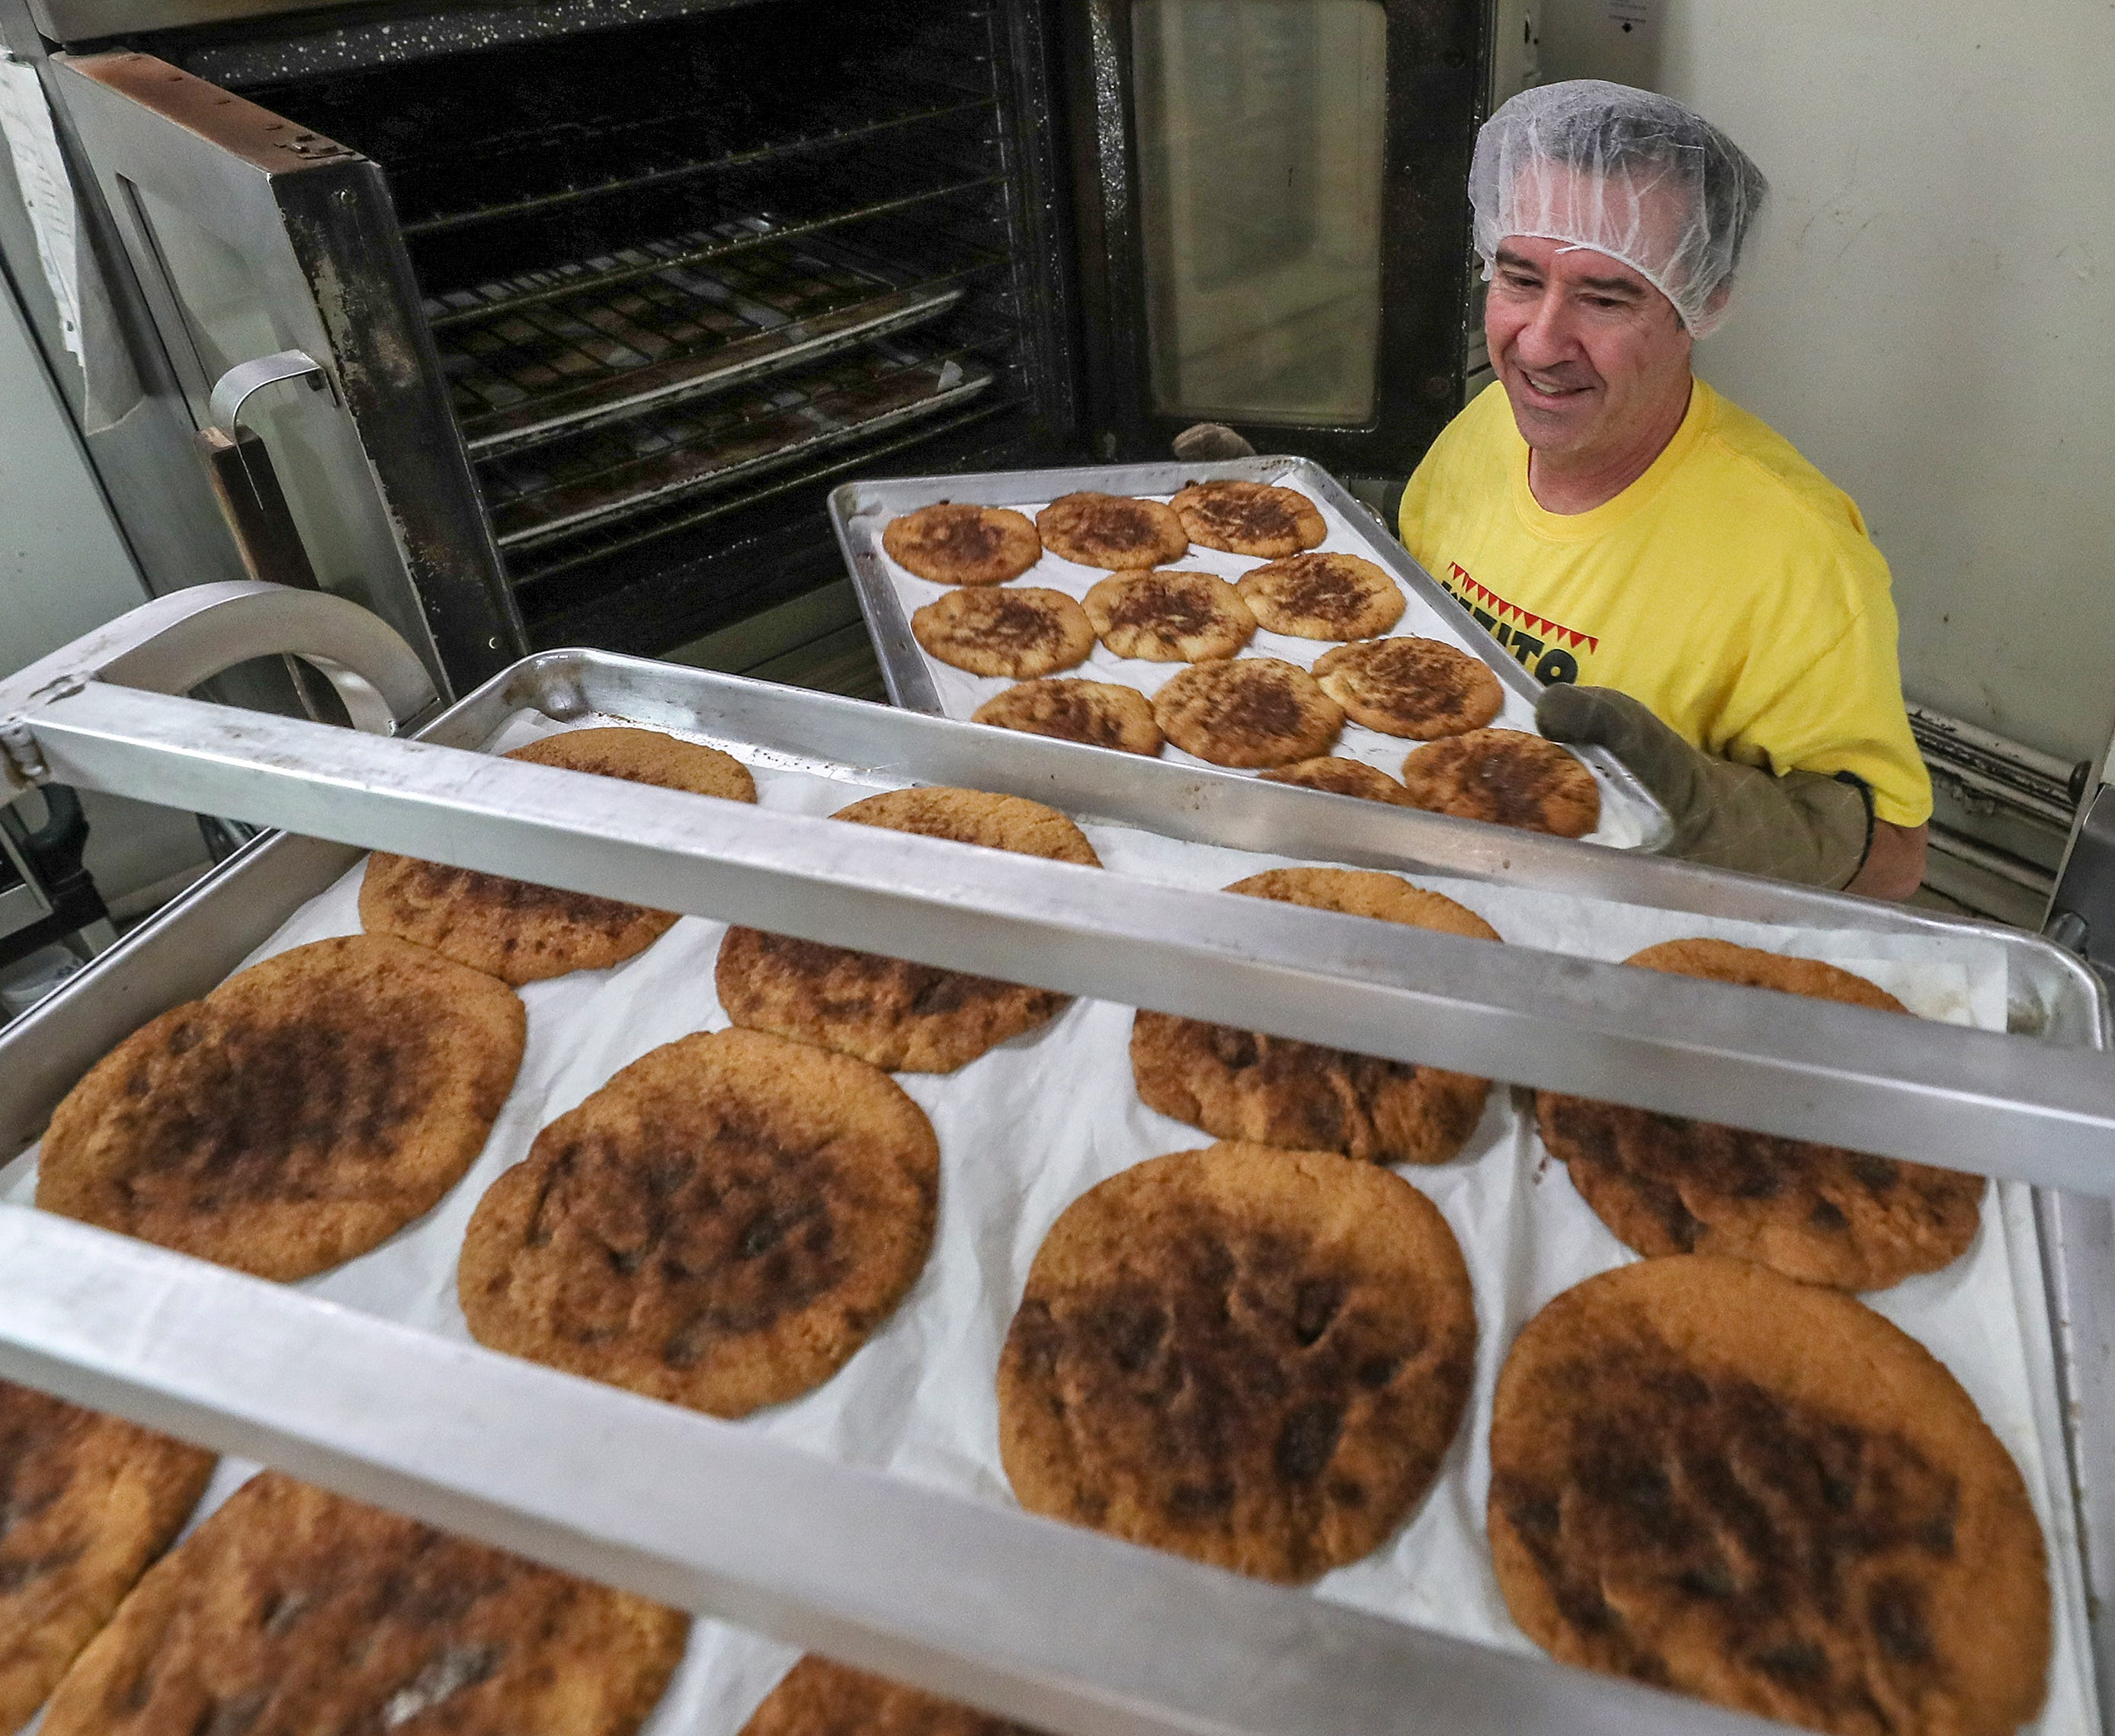 5:12 AMTodd Bartlett, husband of Elizabeth Kizito, takes a tray of the famous cookies out of the oven at the store on Bardstown Road in the Highlands on Jan. 31, 2020.